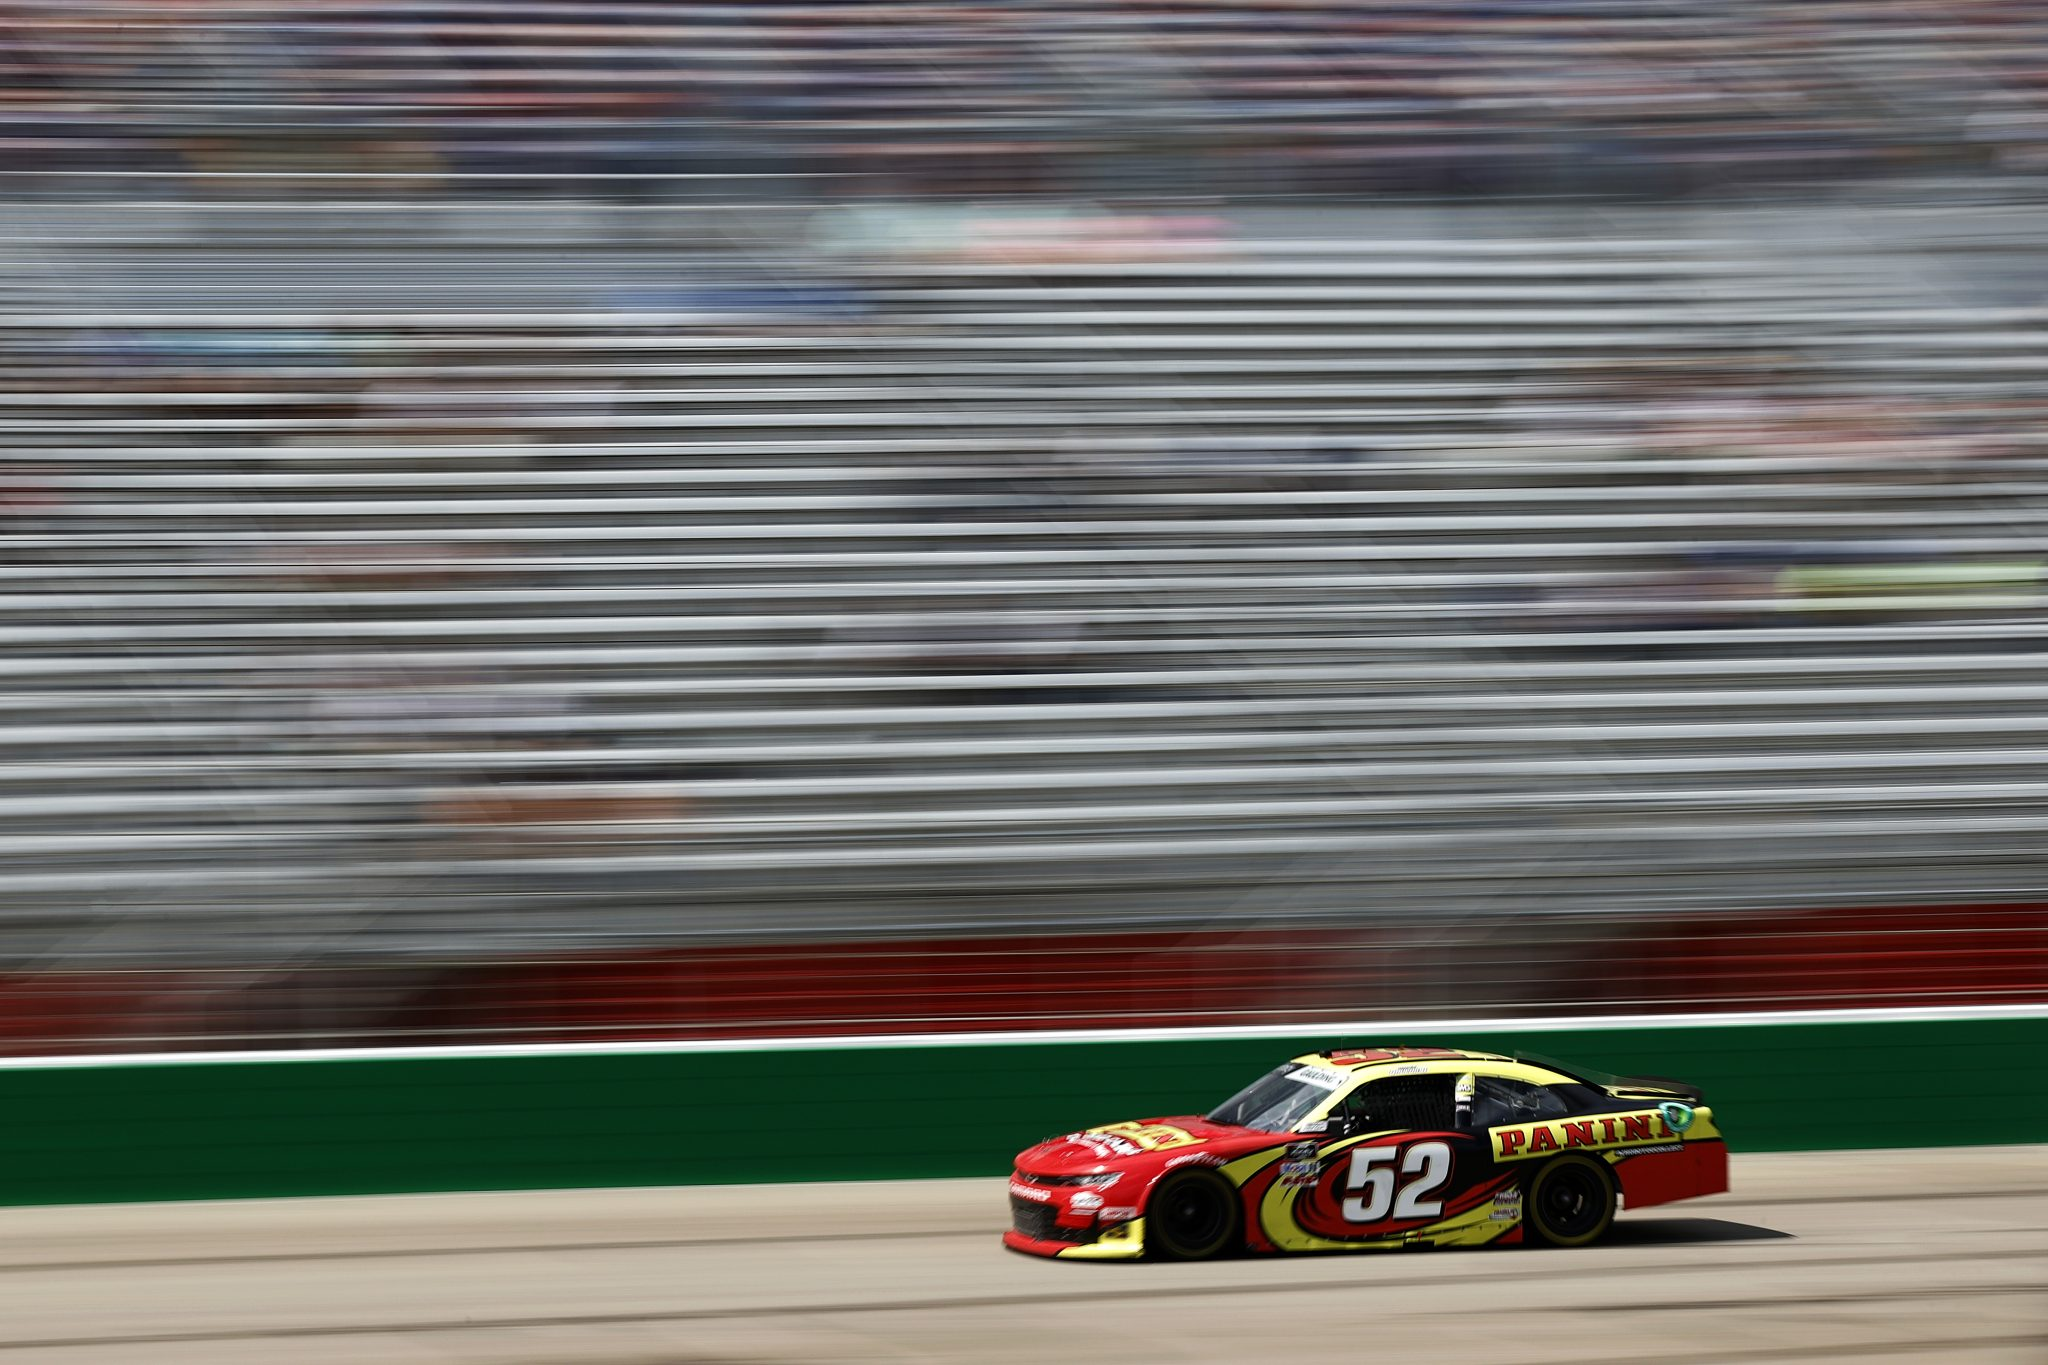 HAMPTON, GEORGIA - JULY 10: Gray Gaulding, driver of the #52 Panini America Chevrolet, drives during the NASCAR Xfinity Series Credit Karma Money 250 at Atlanta Motor Speedway on July 10, 2021 in Hampton, Georgia. (Photo by Jared C. Tilton/Getty Images)   Getty Images